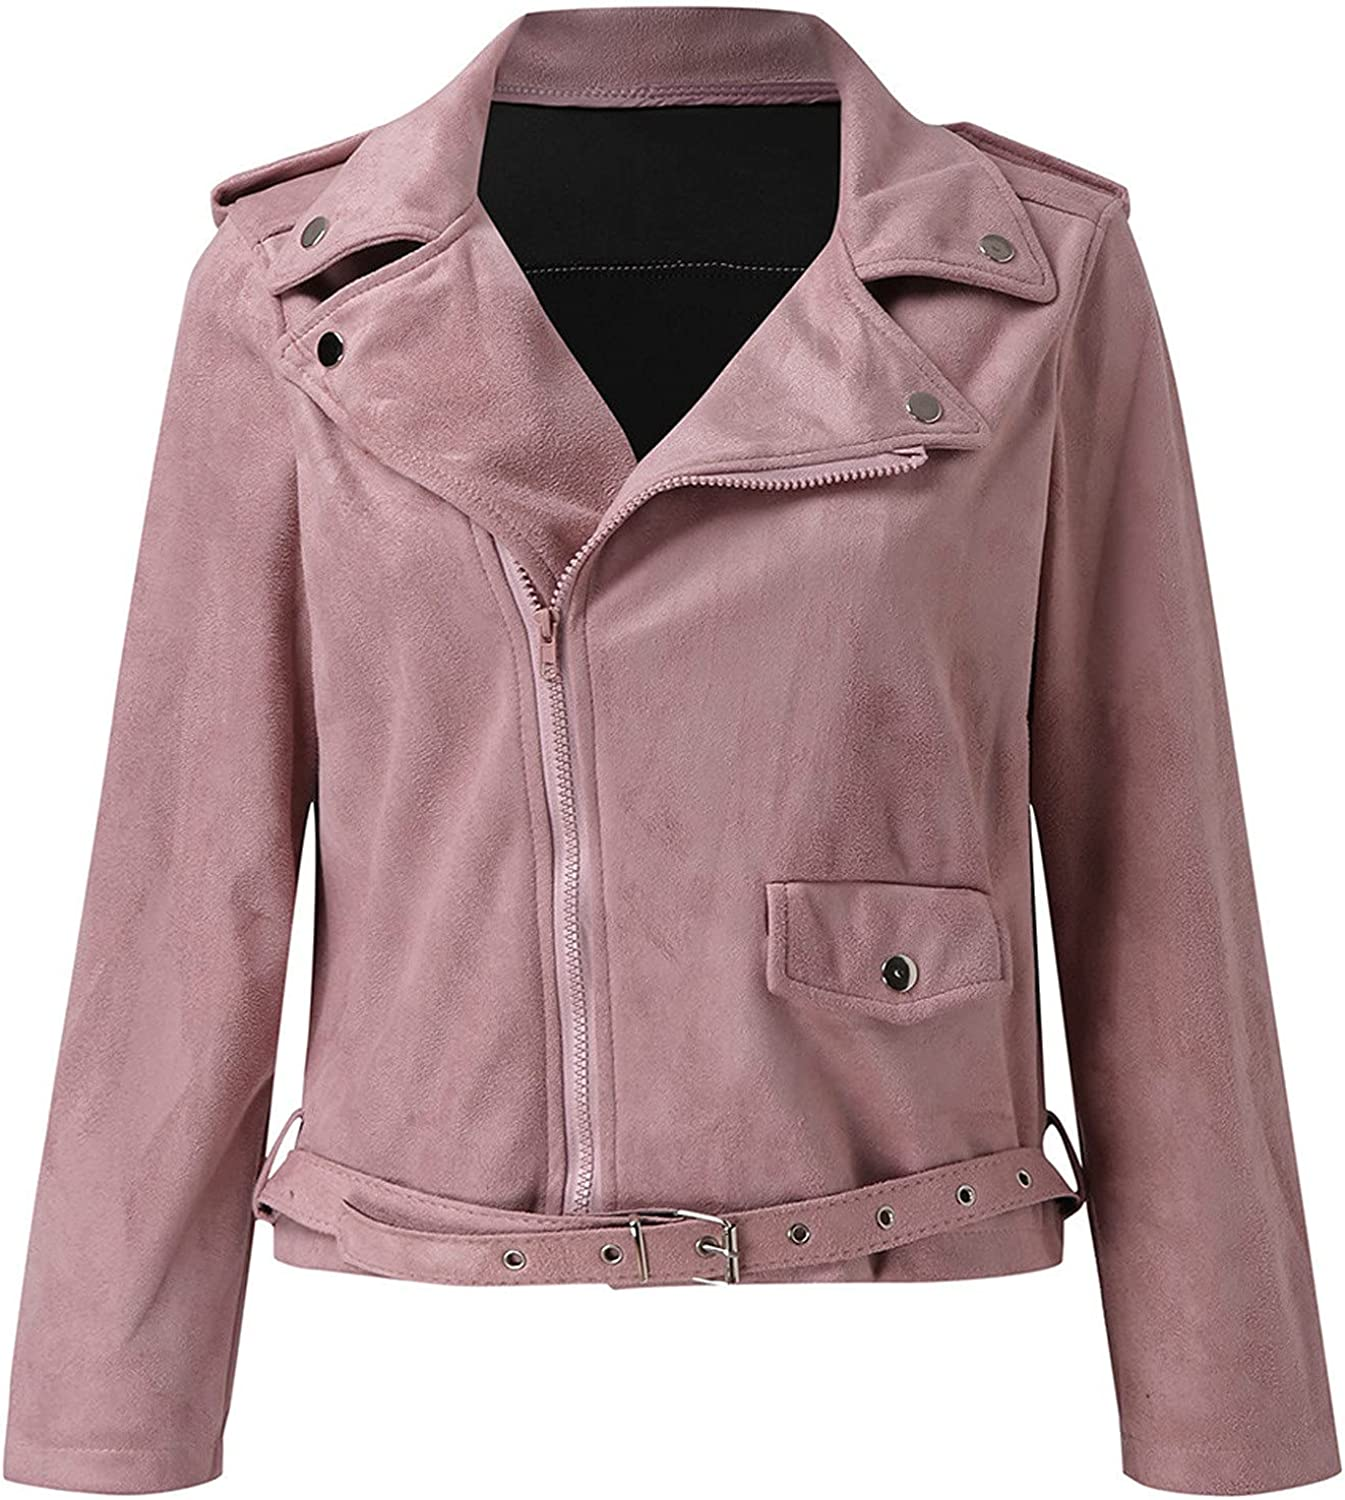 Women's Casual Jackets Retro Faux Suede Slim Zippers Coat Lightweight Utility Turn-down Collar Short Anorak with Sashes